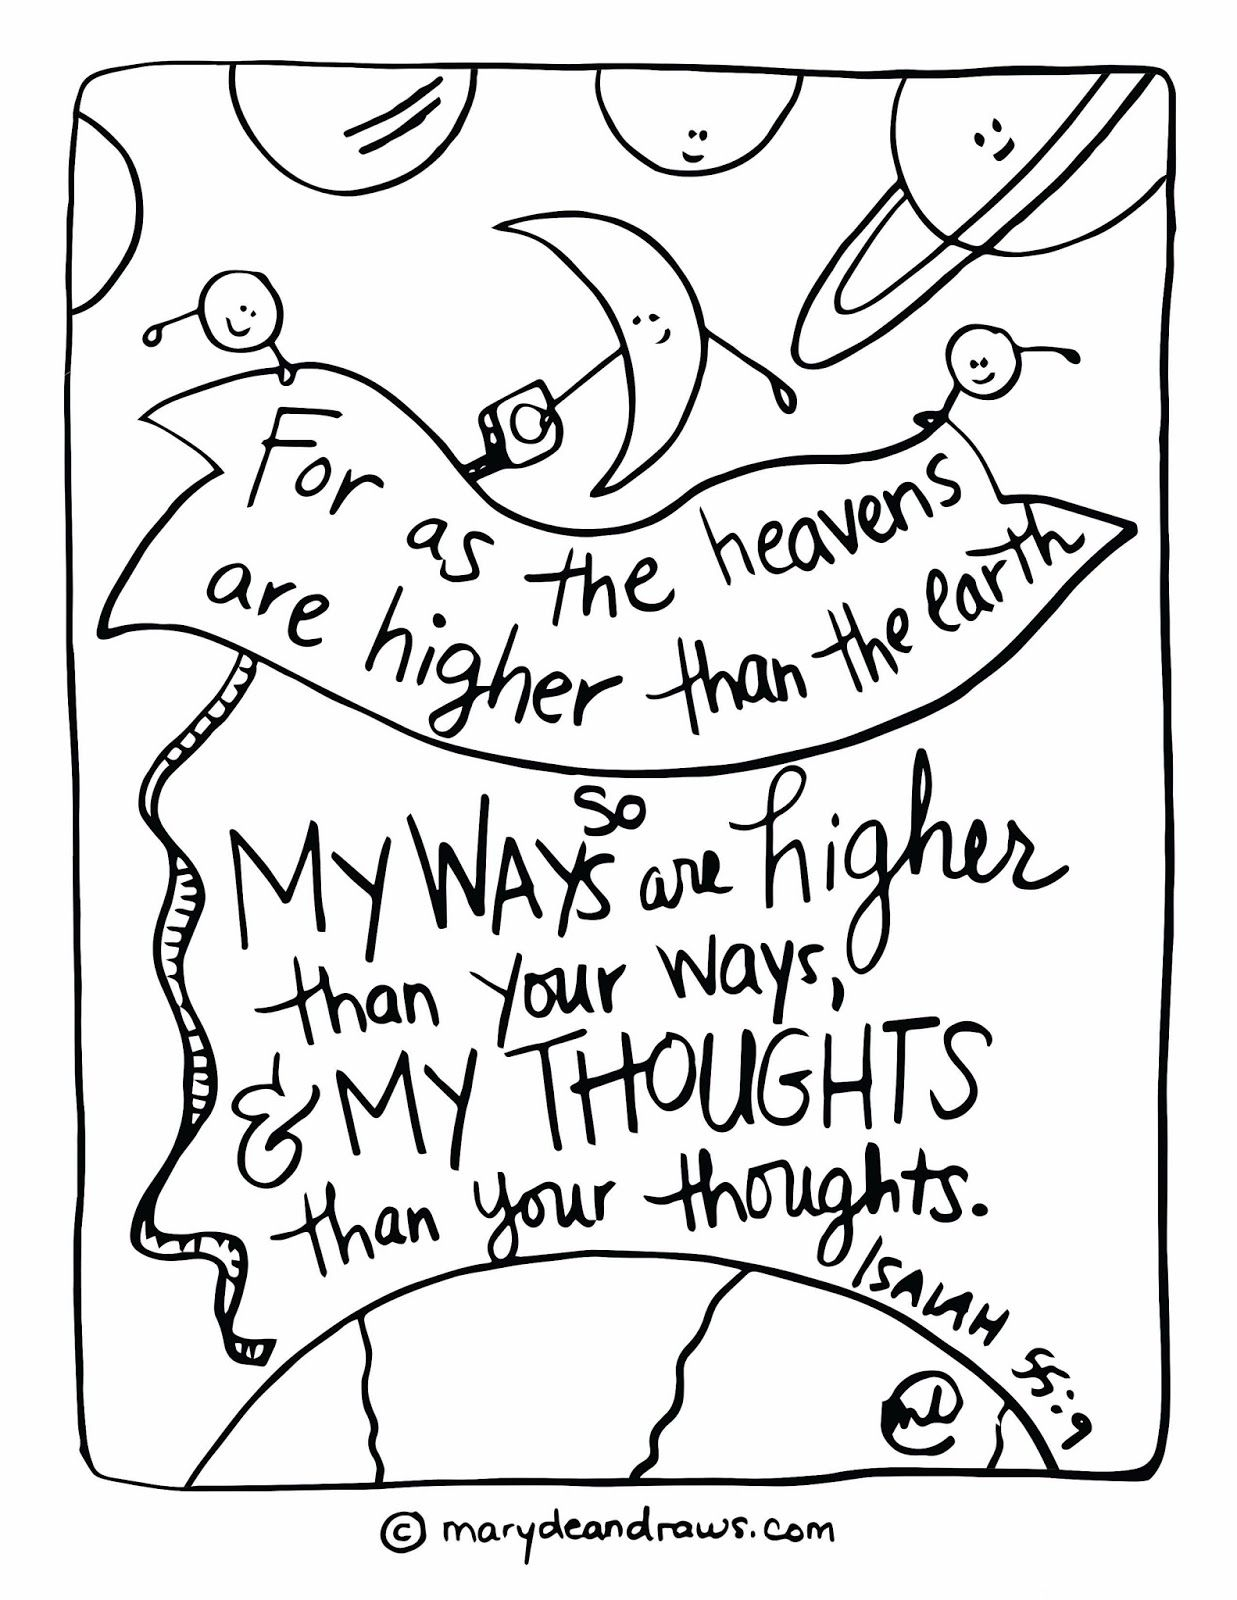 Isaiah 55:9 Printable Scripture Coloring Page Marydean